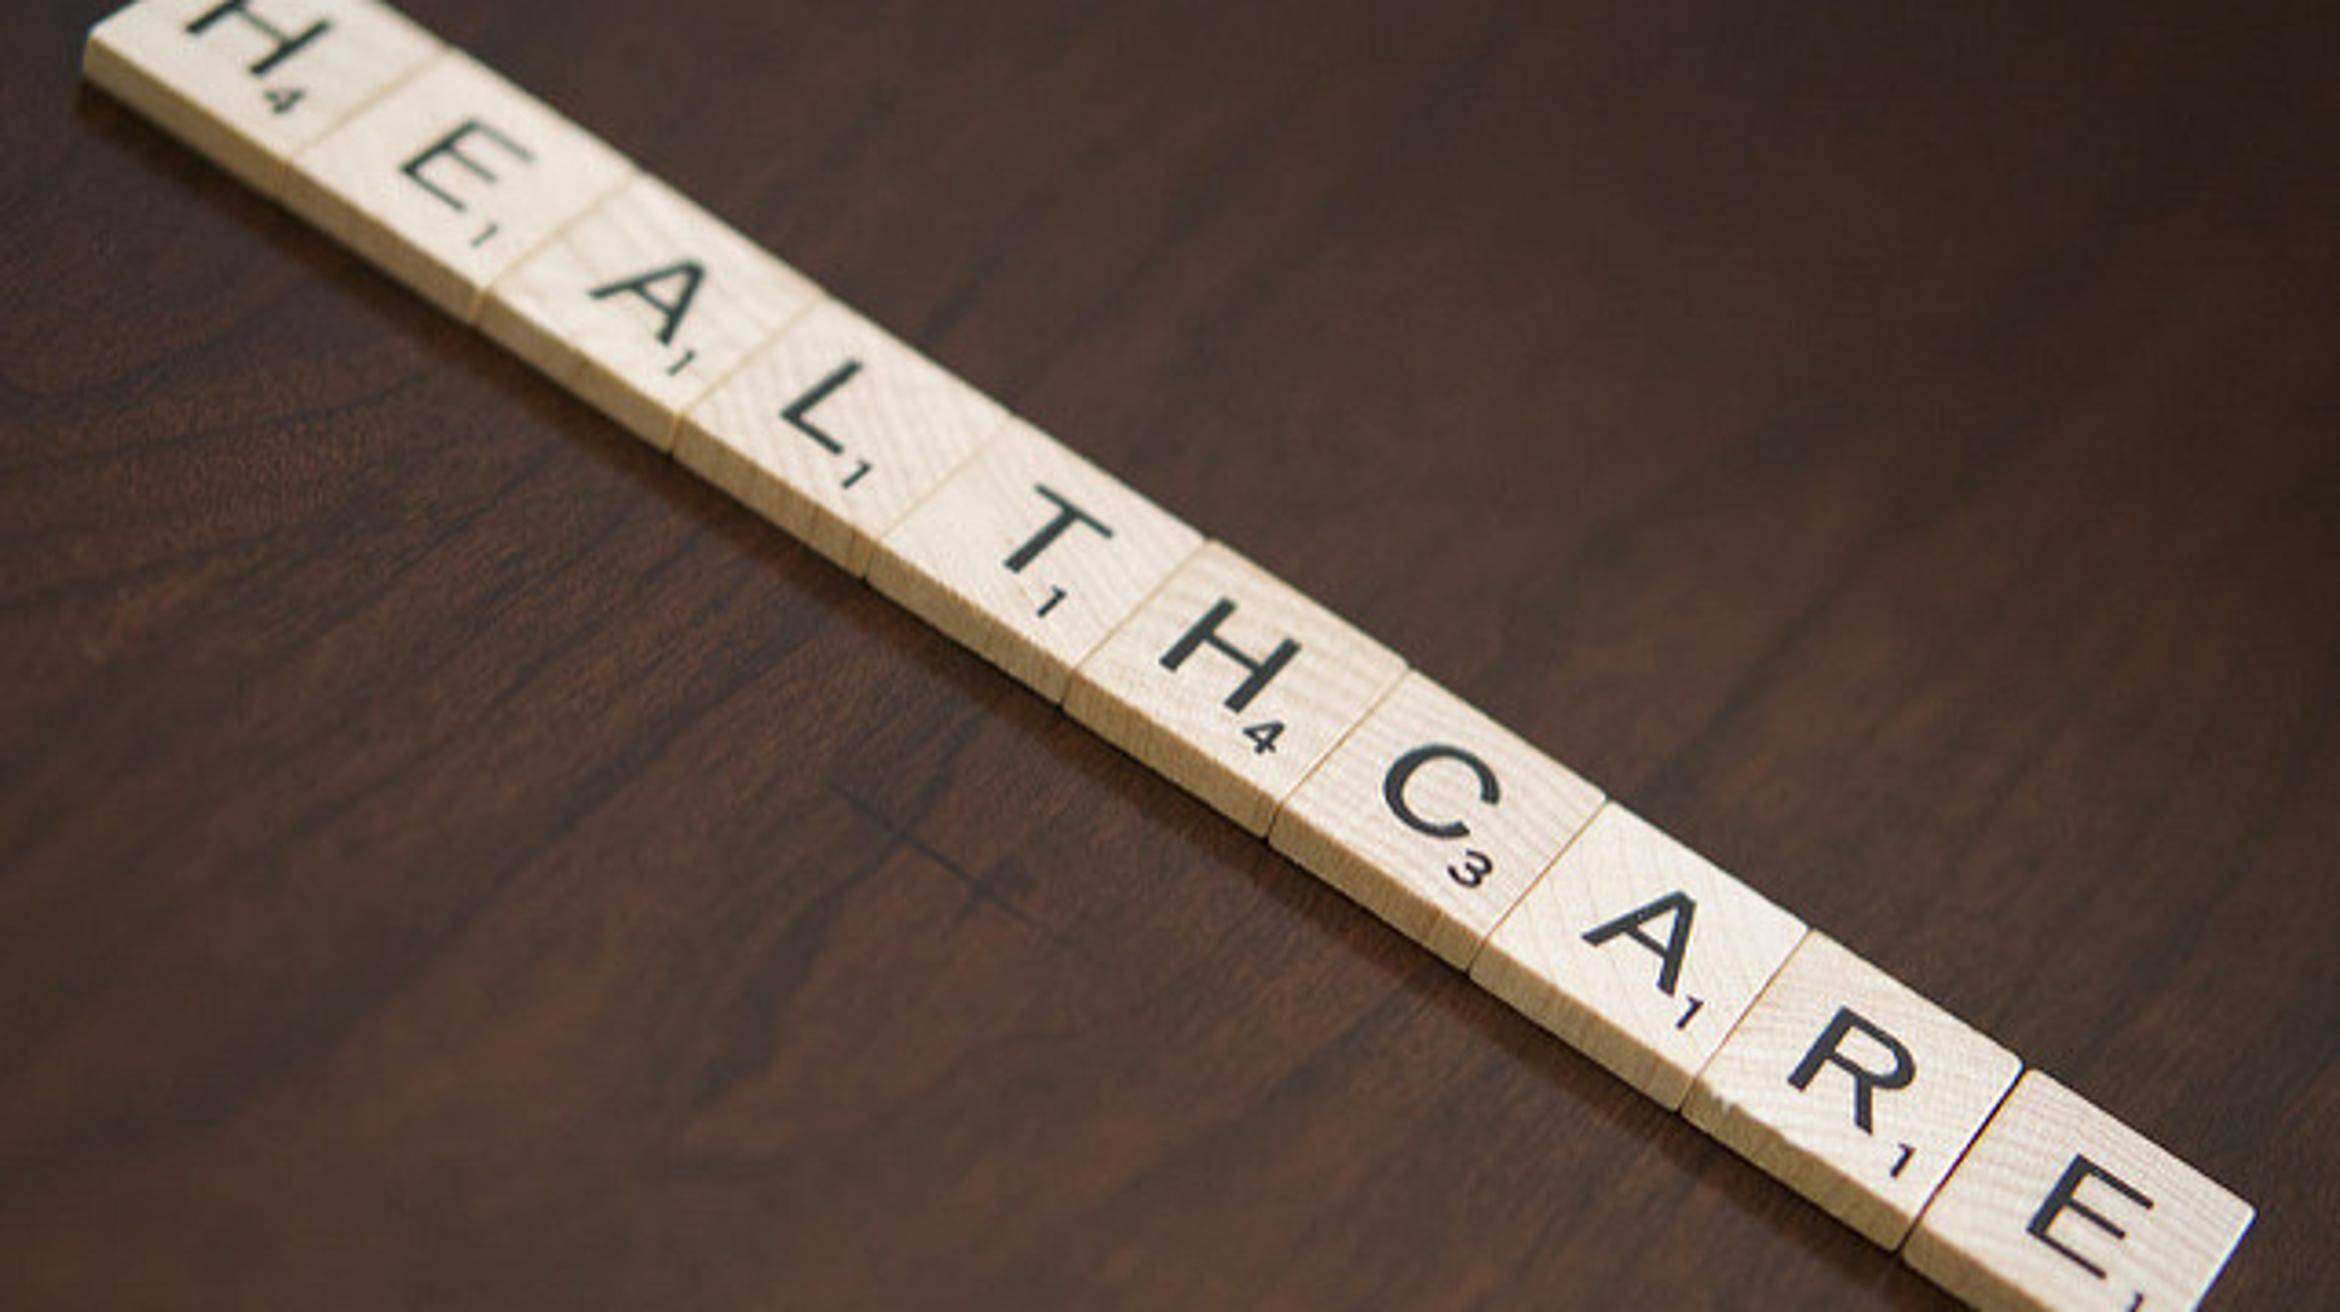 Image of letters spelling health care, credit: flickr